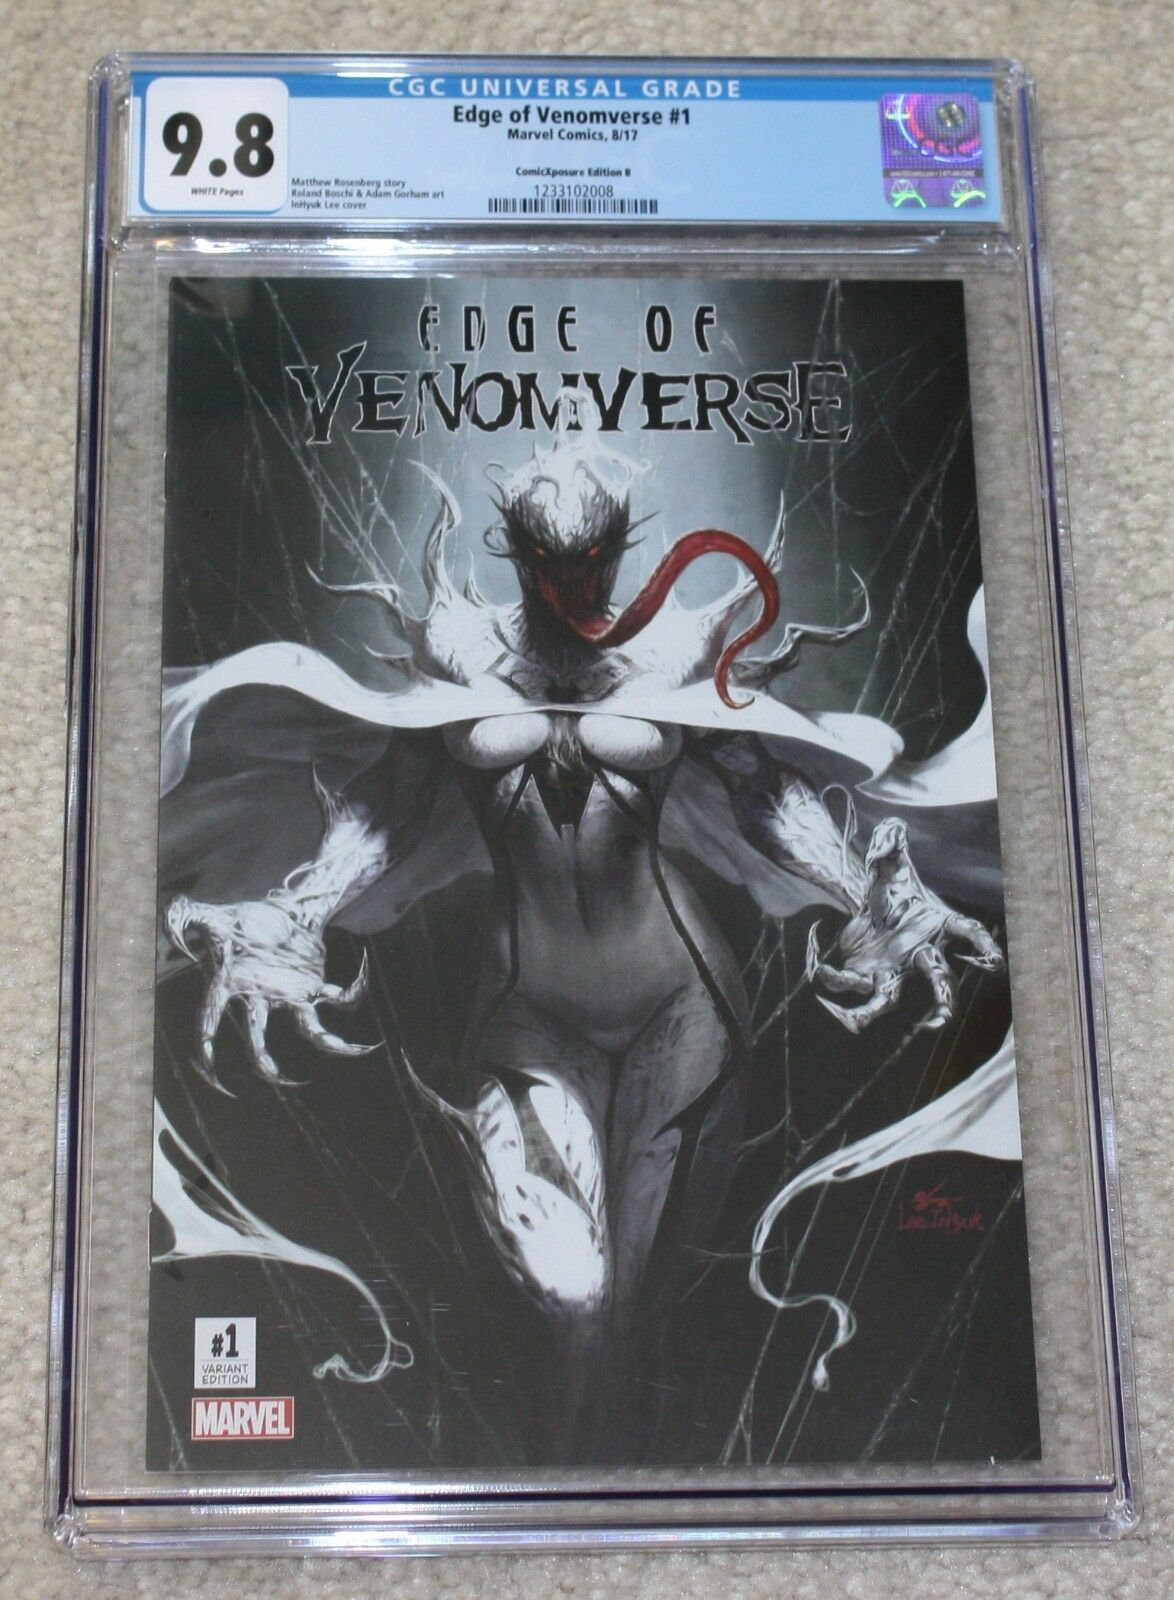 EDGE OF VENOMVERSE #1 CGC 9.8 INHYUK LEE WHITE QUEEN FULLY VENOM VARIANT B